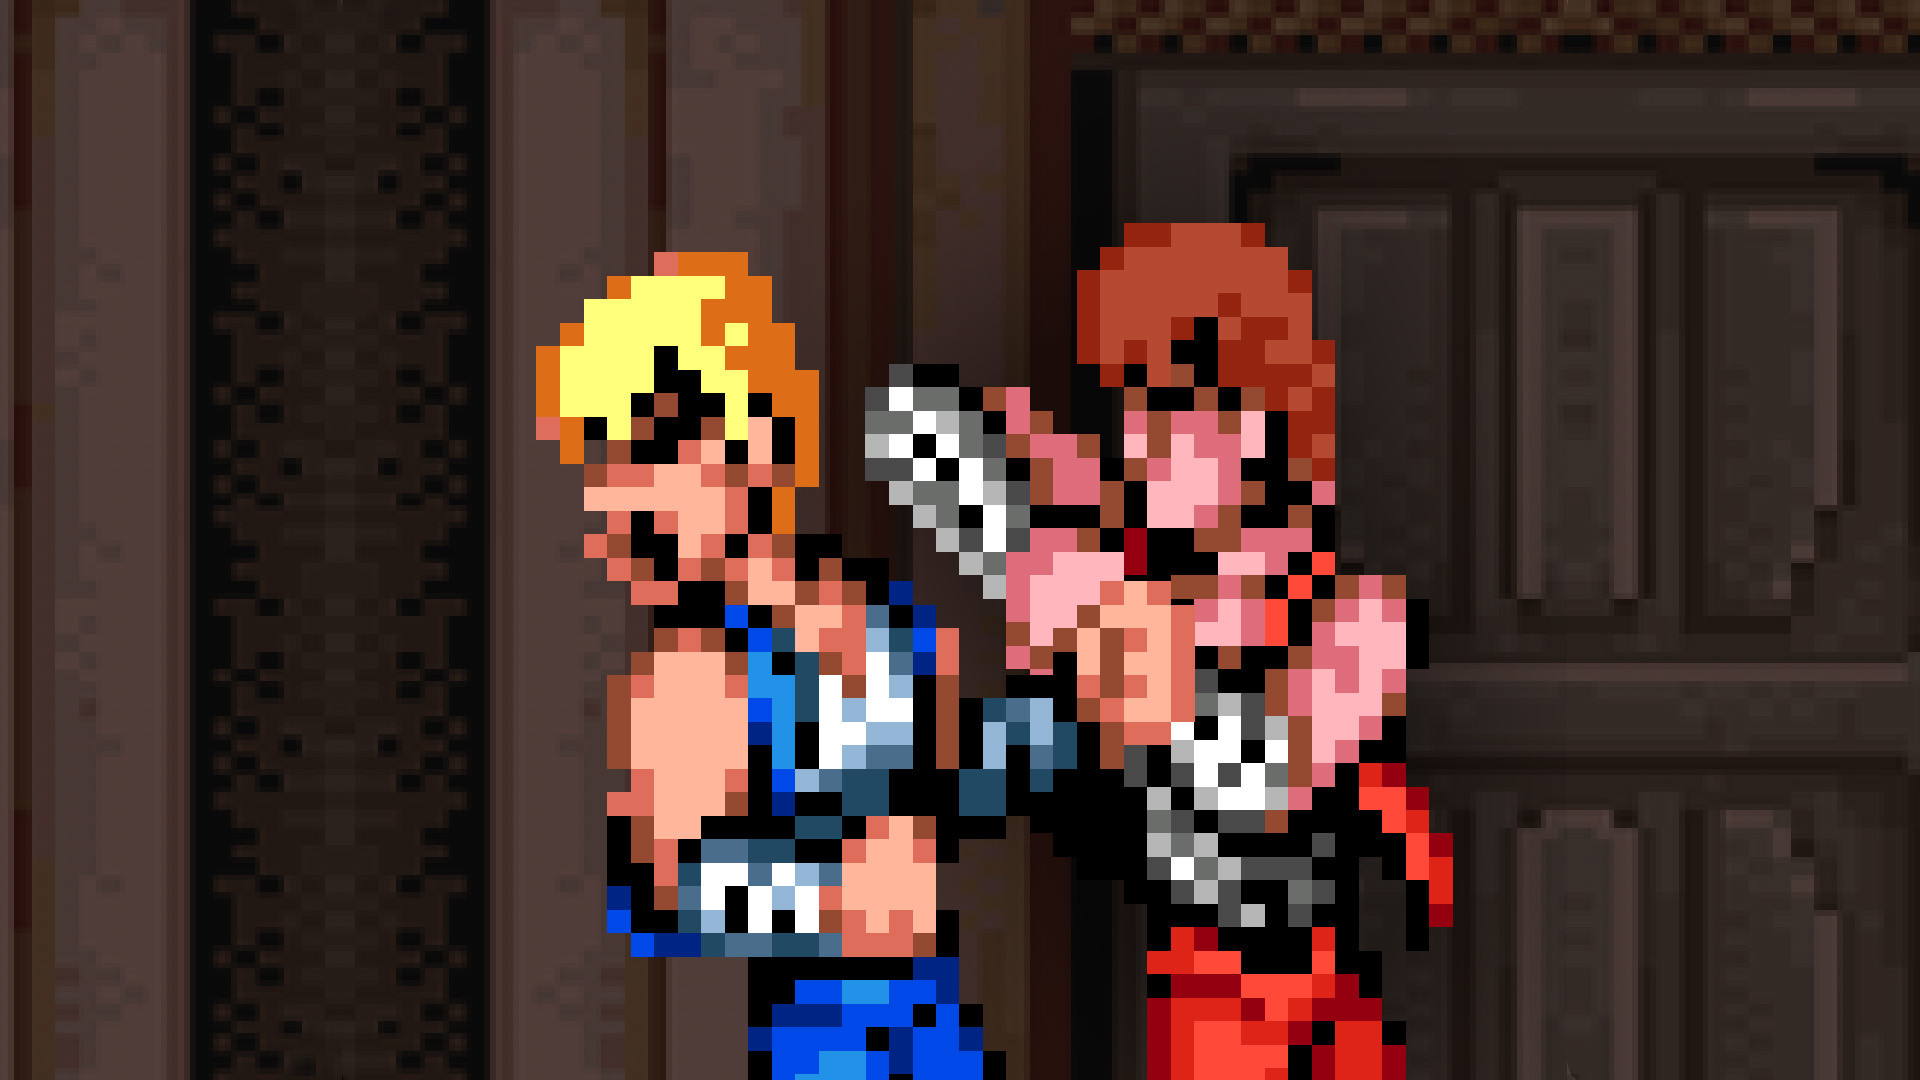 Res: 1920x1080, wallpaper #2 Wallpaper from Double Dragon Trilogy